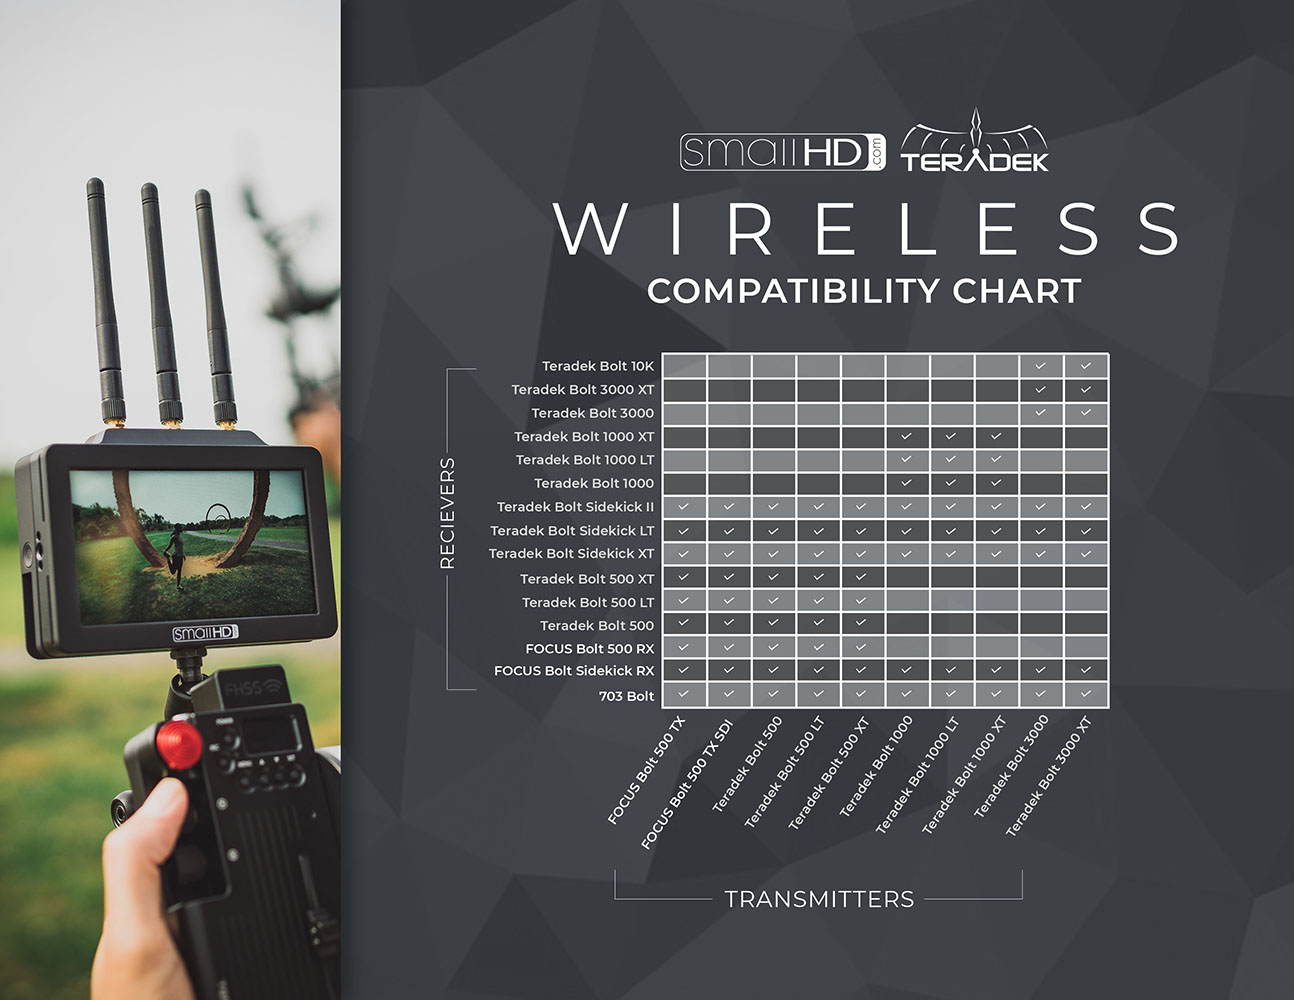 Wireless-Compatibilty-chart-update-11-5-18.jpg